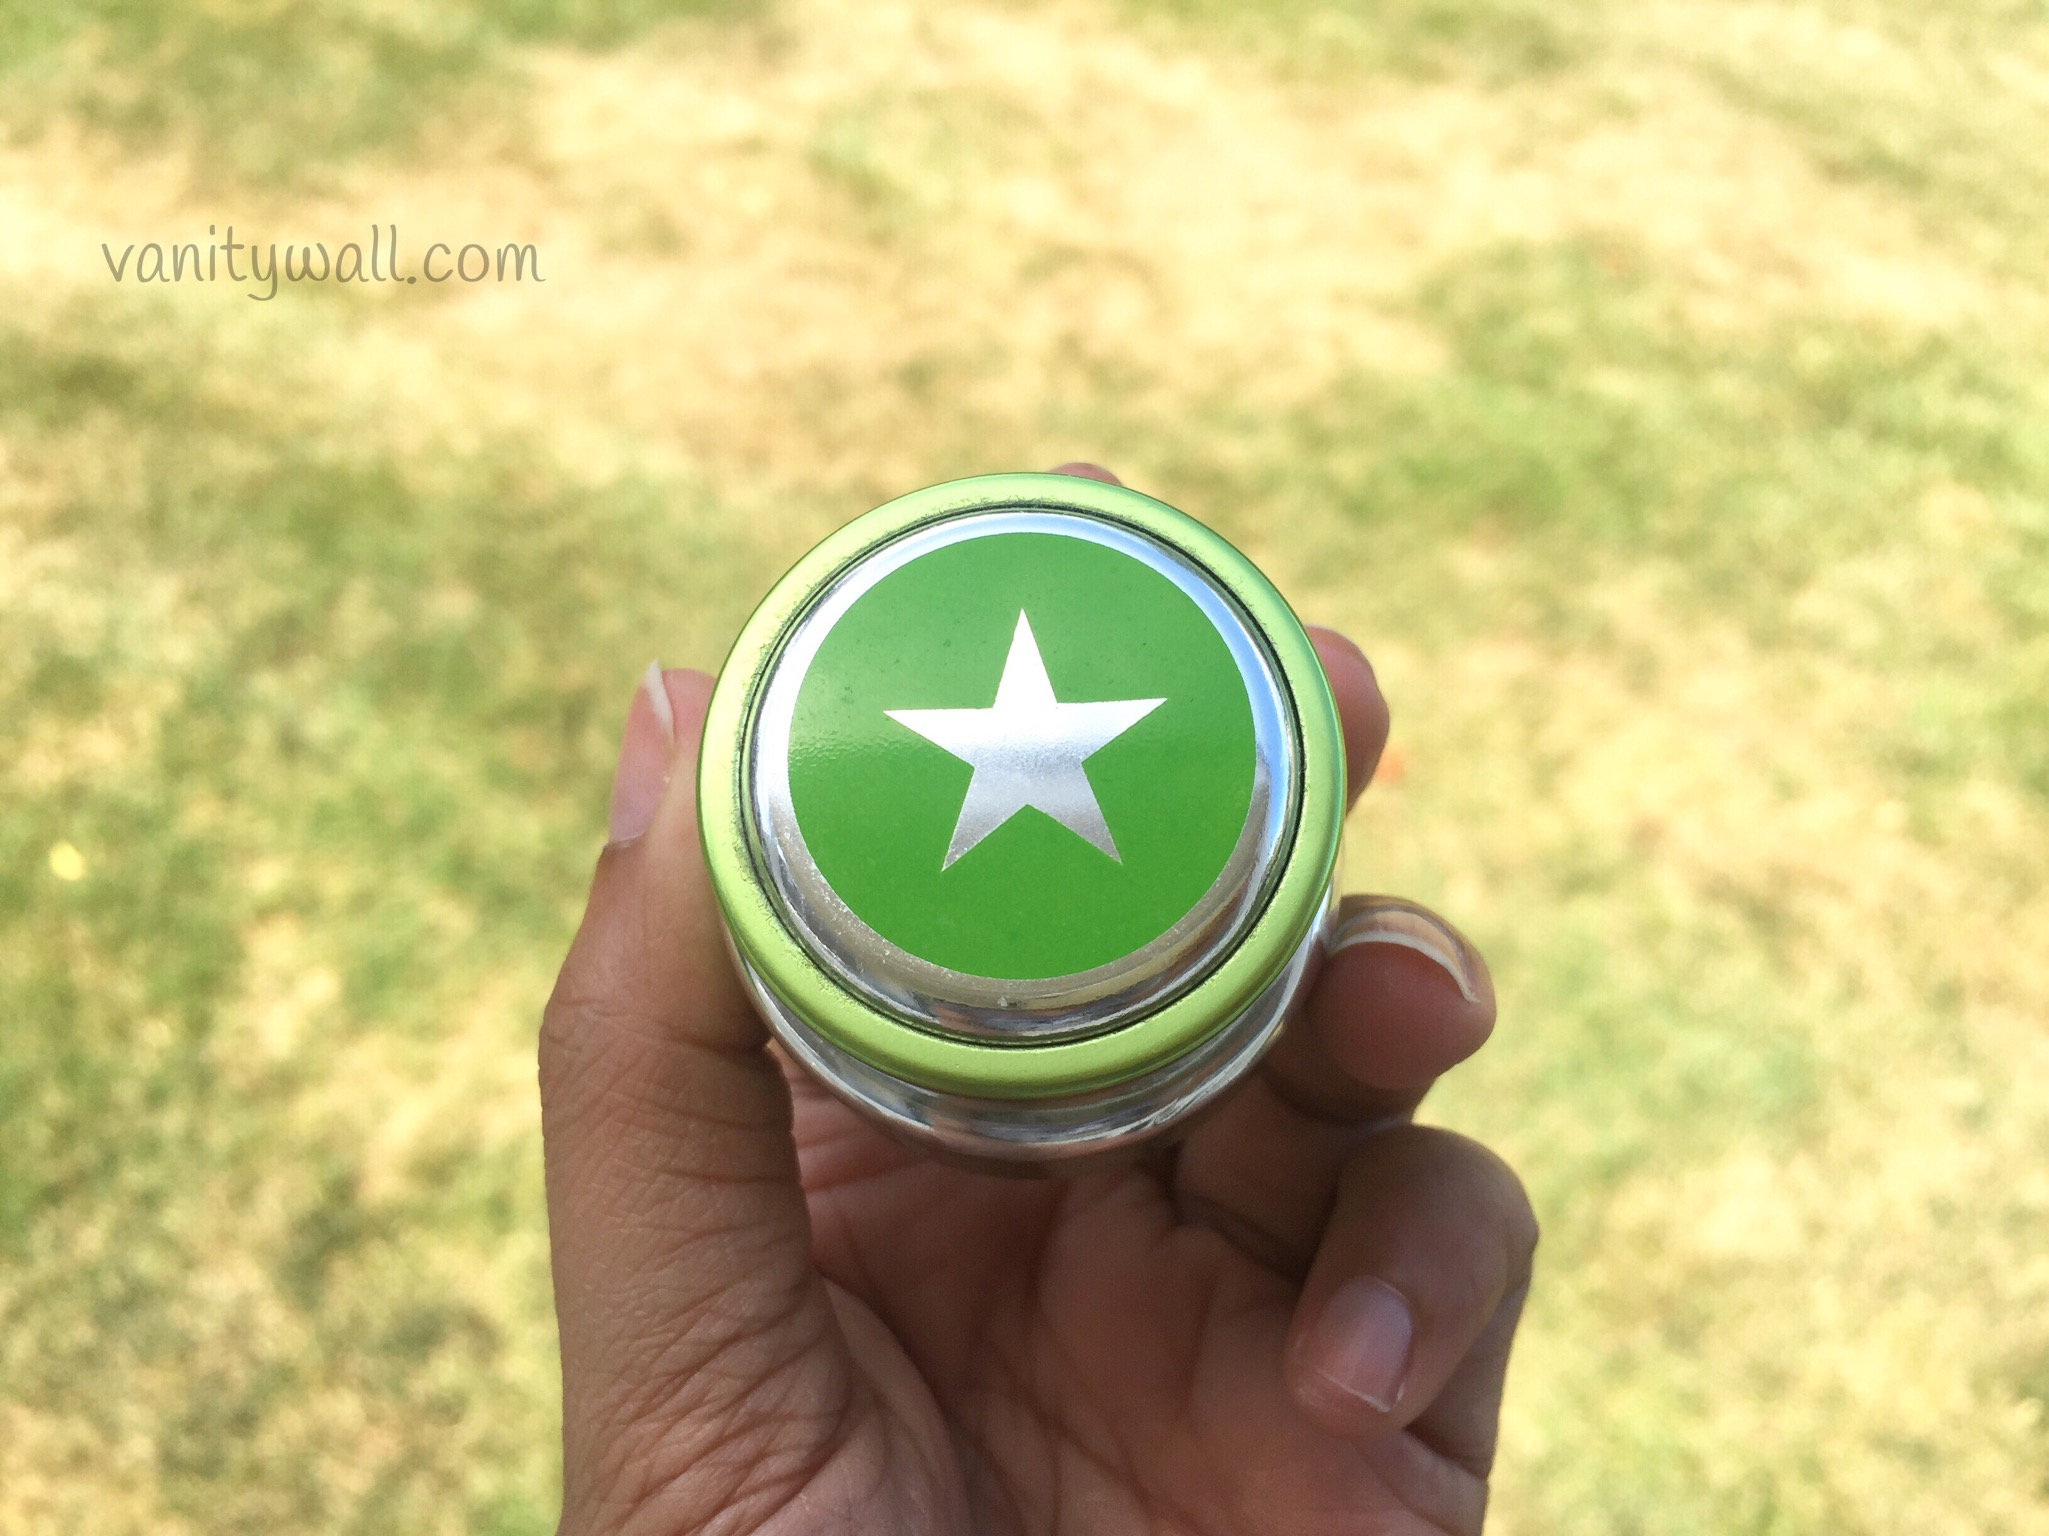 glamglow powermud dual cleanse treatment